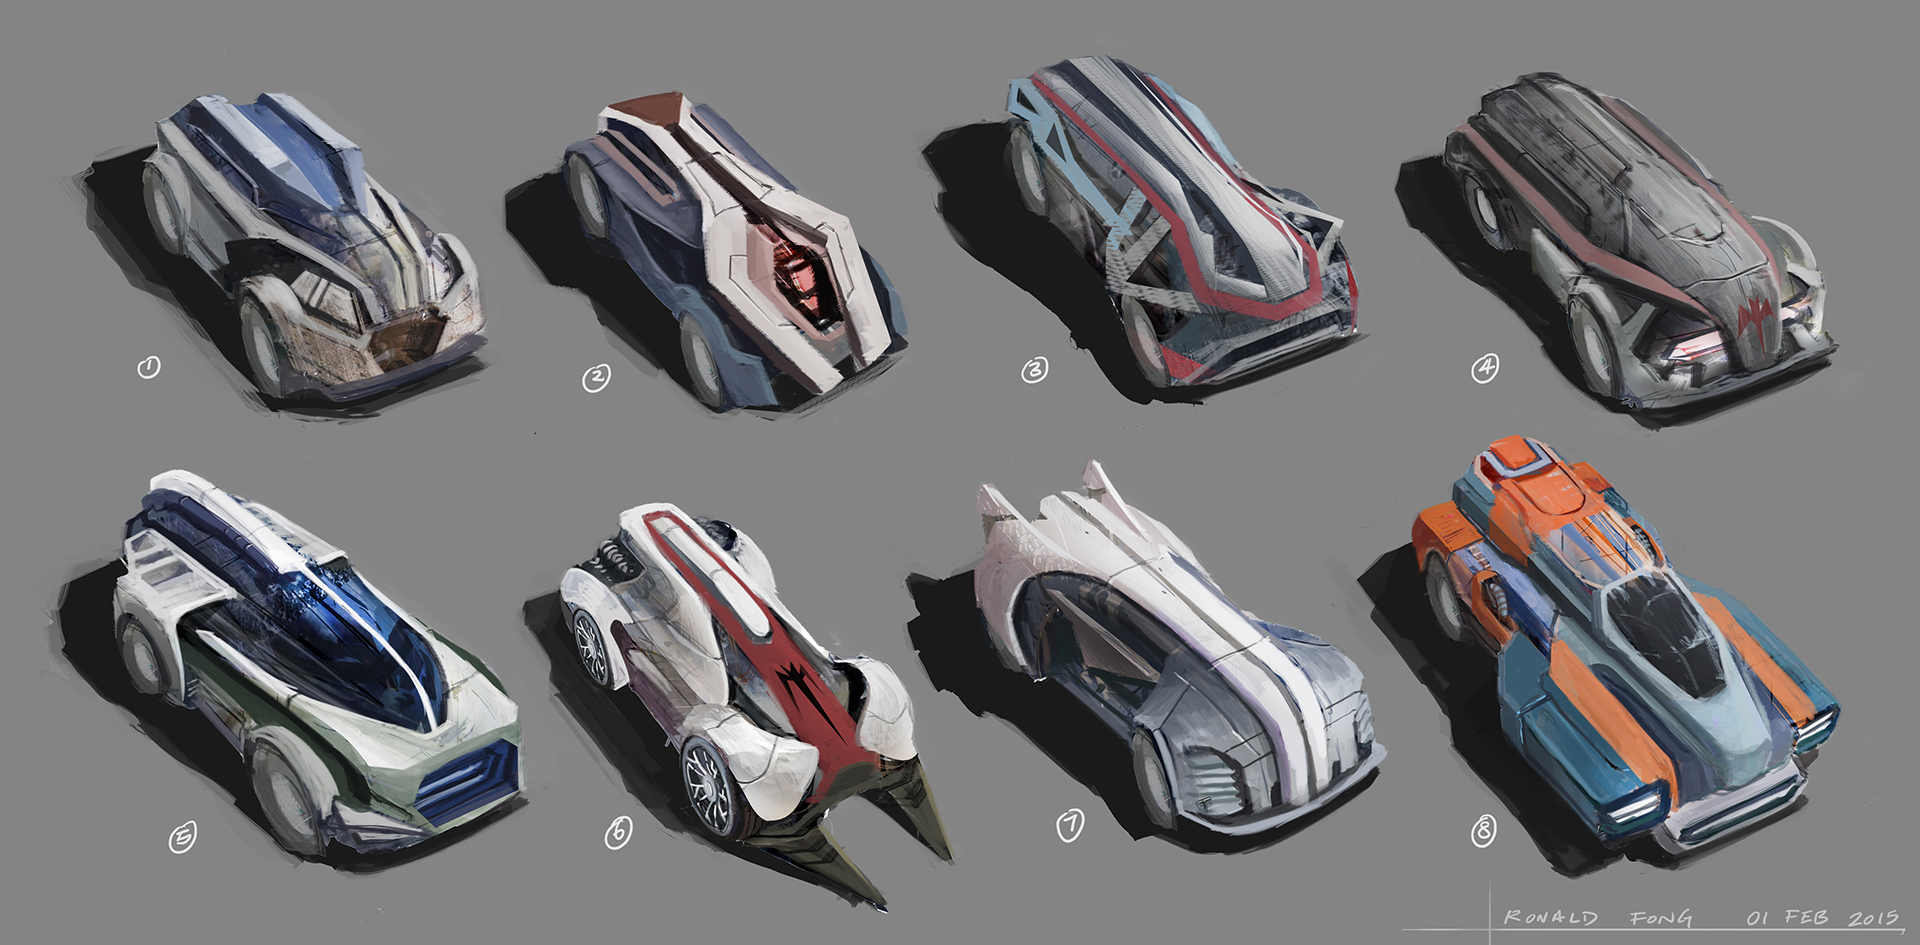 Concept Cars by Ronald Fong